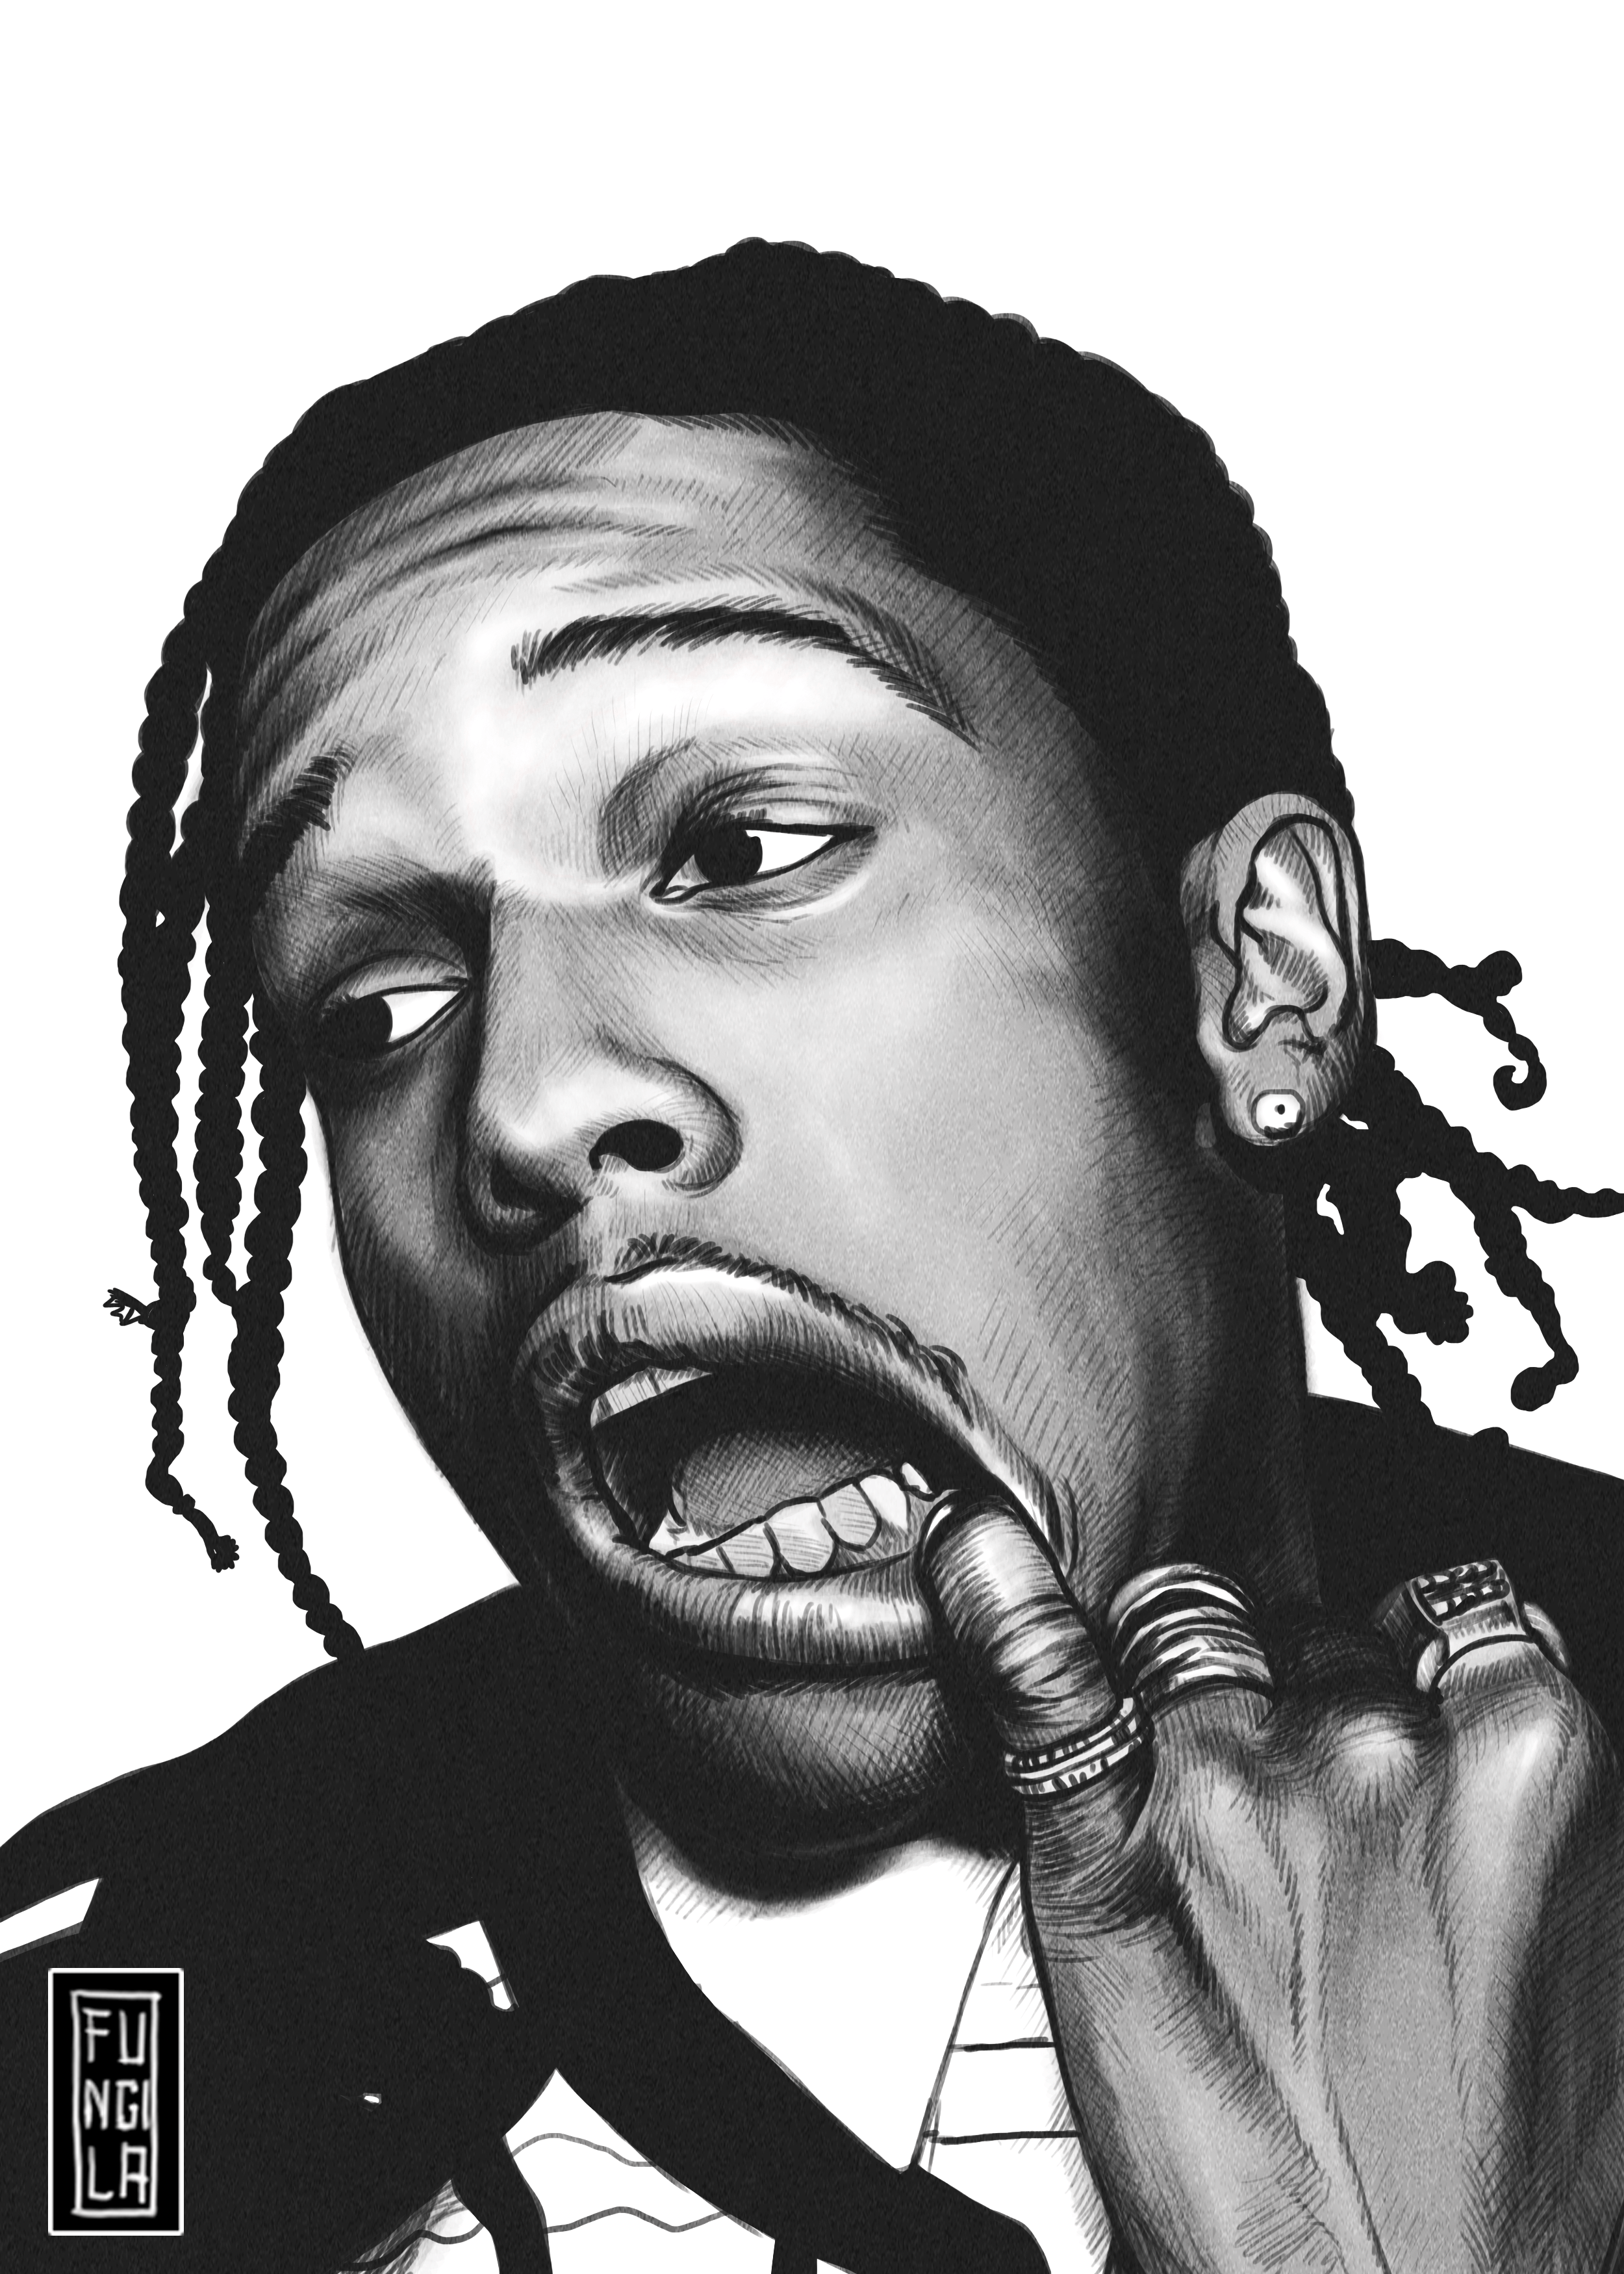 2500x3500 Asap Rocky Wallpapers for Iphone 7, Iphone 7 plus, Iphone 6 plus